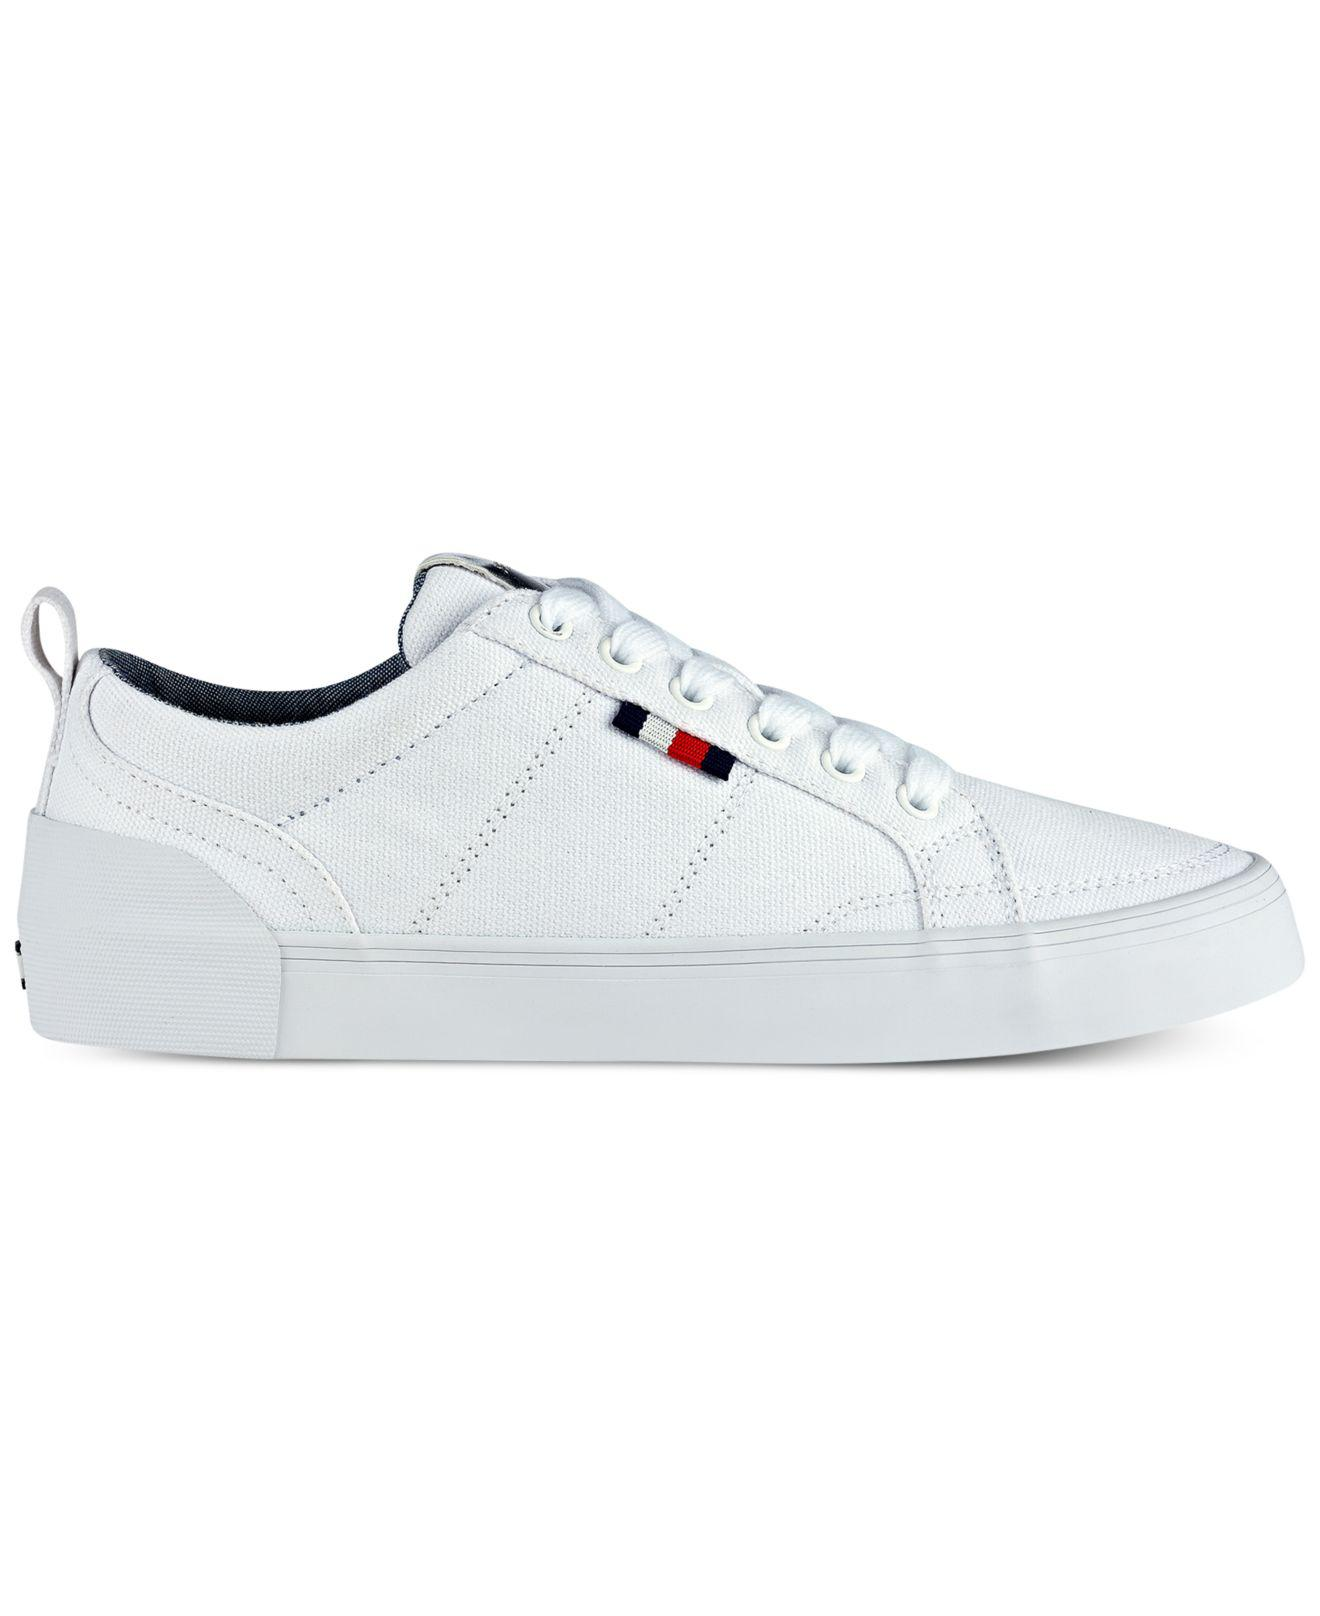 1df98cf9e Lyst - Tommy Hilfiger Priss Lace-up Sneakers in White